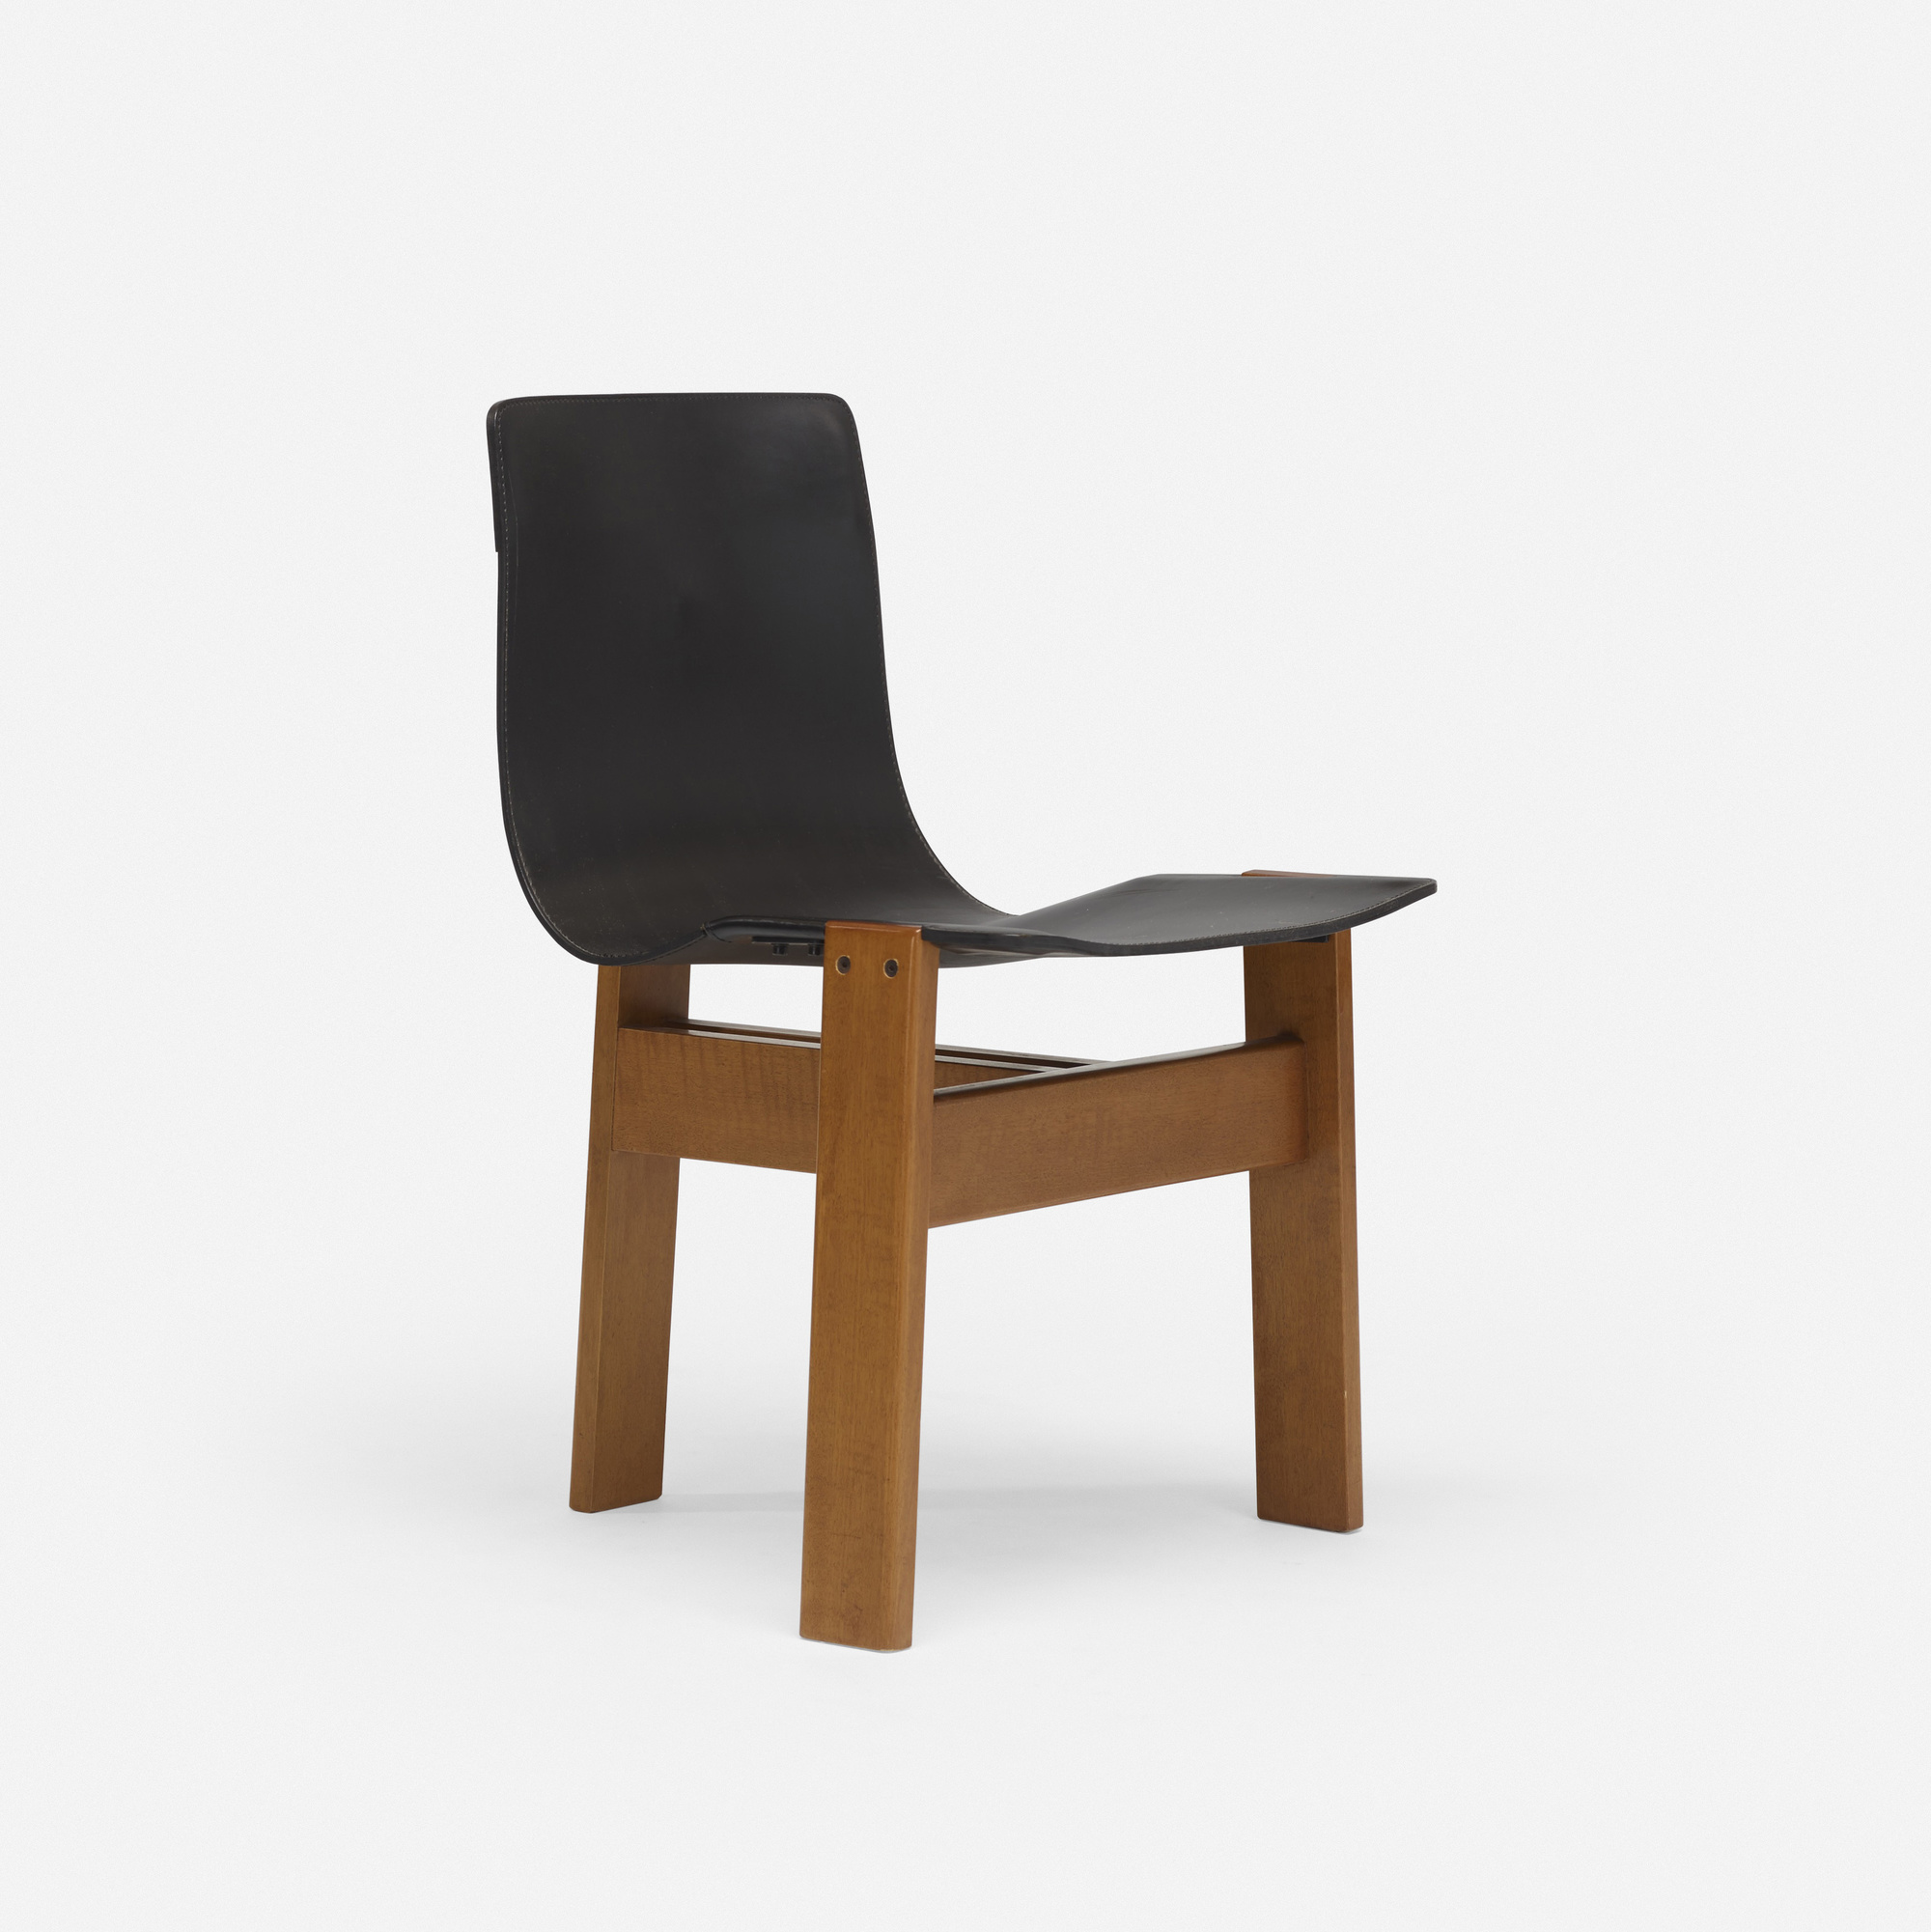 527: Angelo Mangiarotti / Tre 3 dining chair (1 of 3)